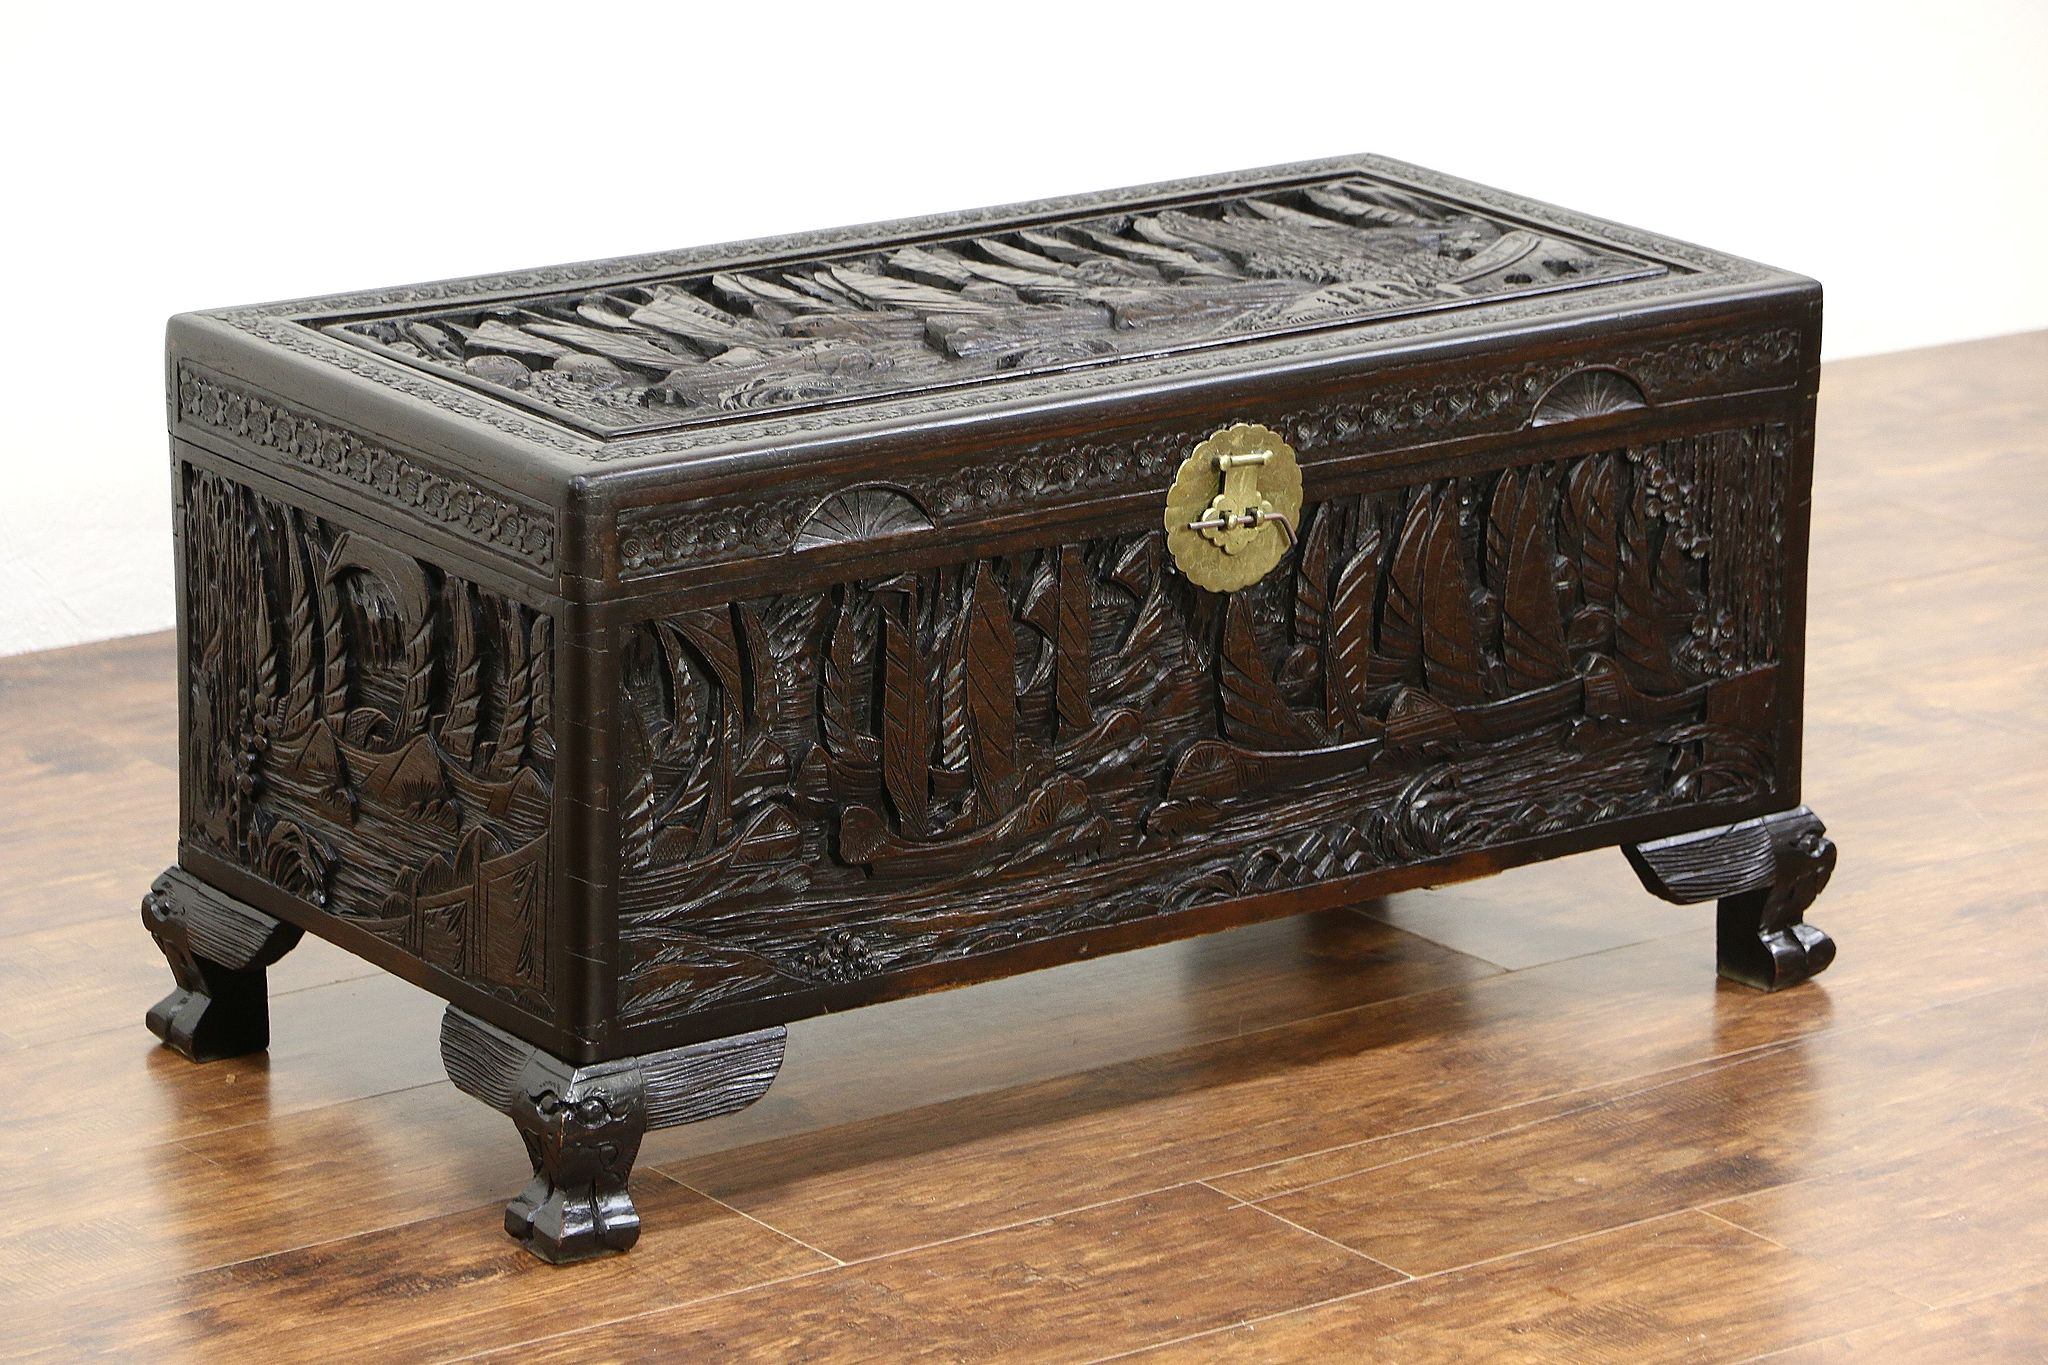 Chinese Camphor Wood Trunk Dowry Chest or Coffee Table Carved